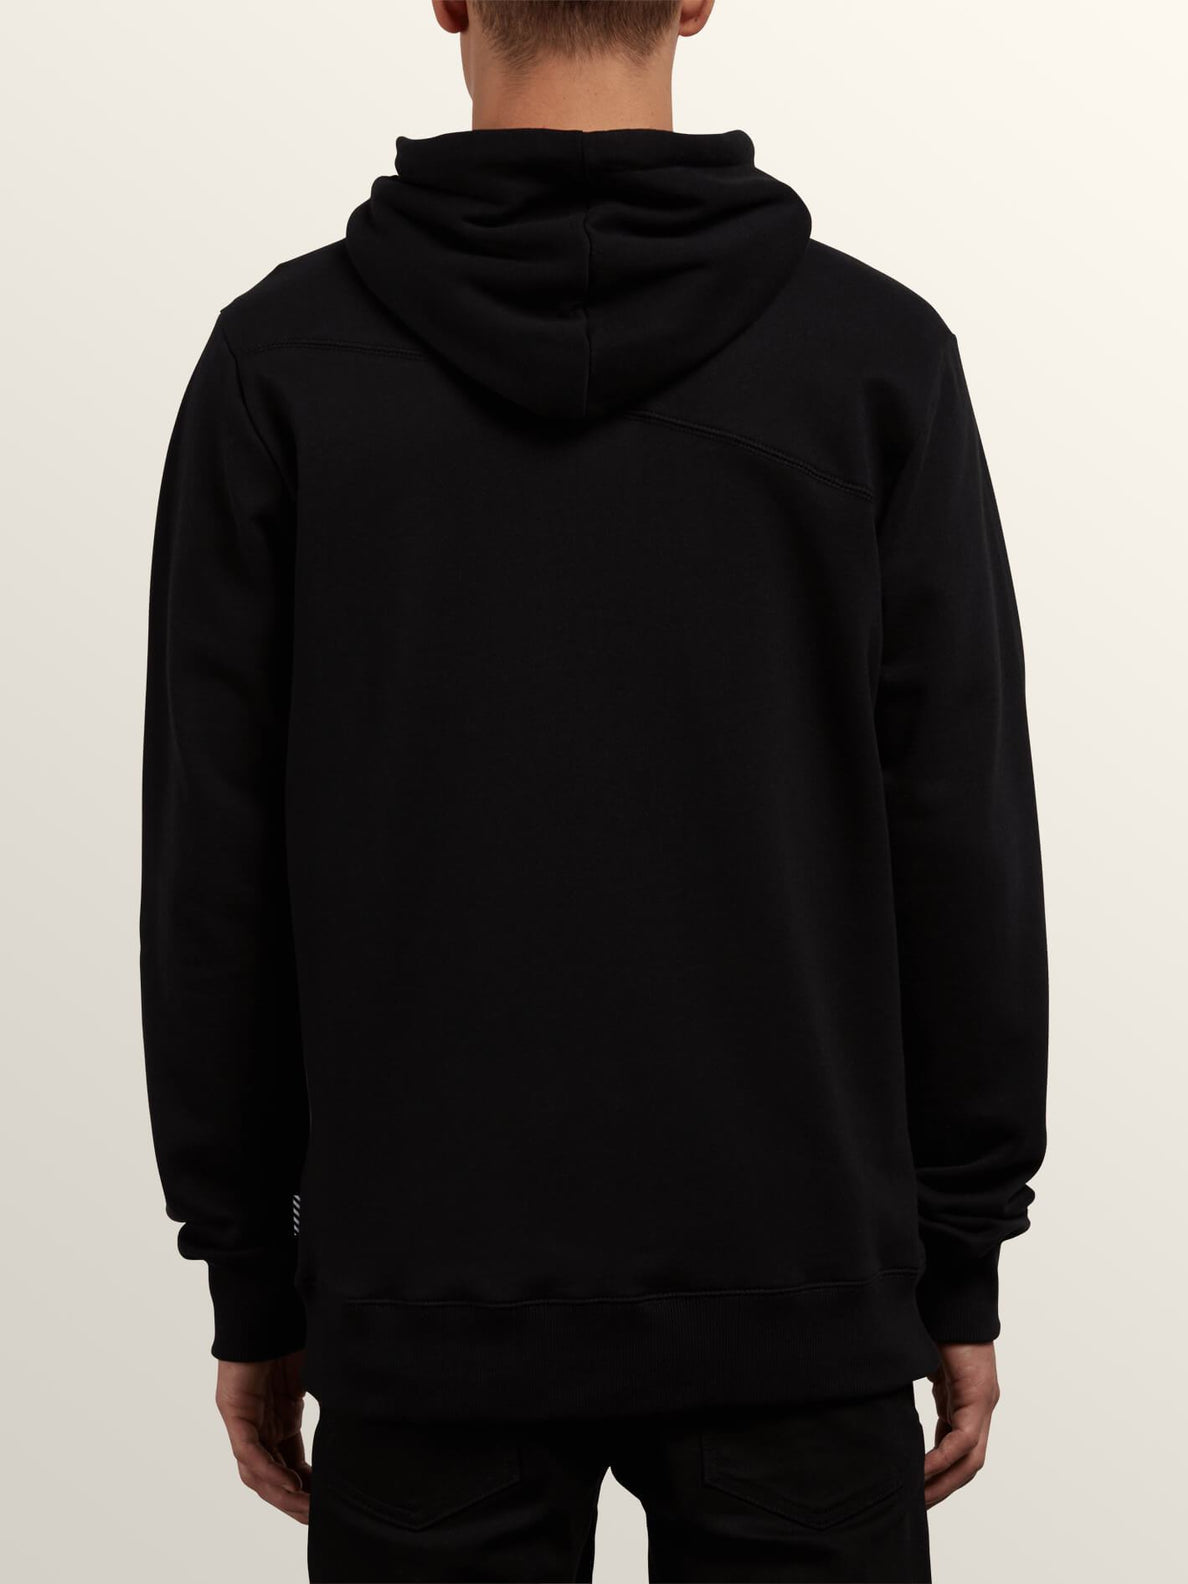 Sweat Sngl Stn Zip - Black